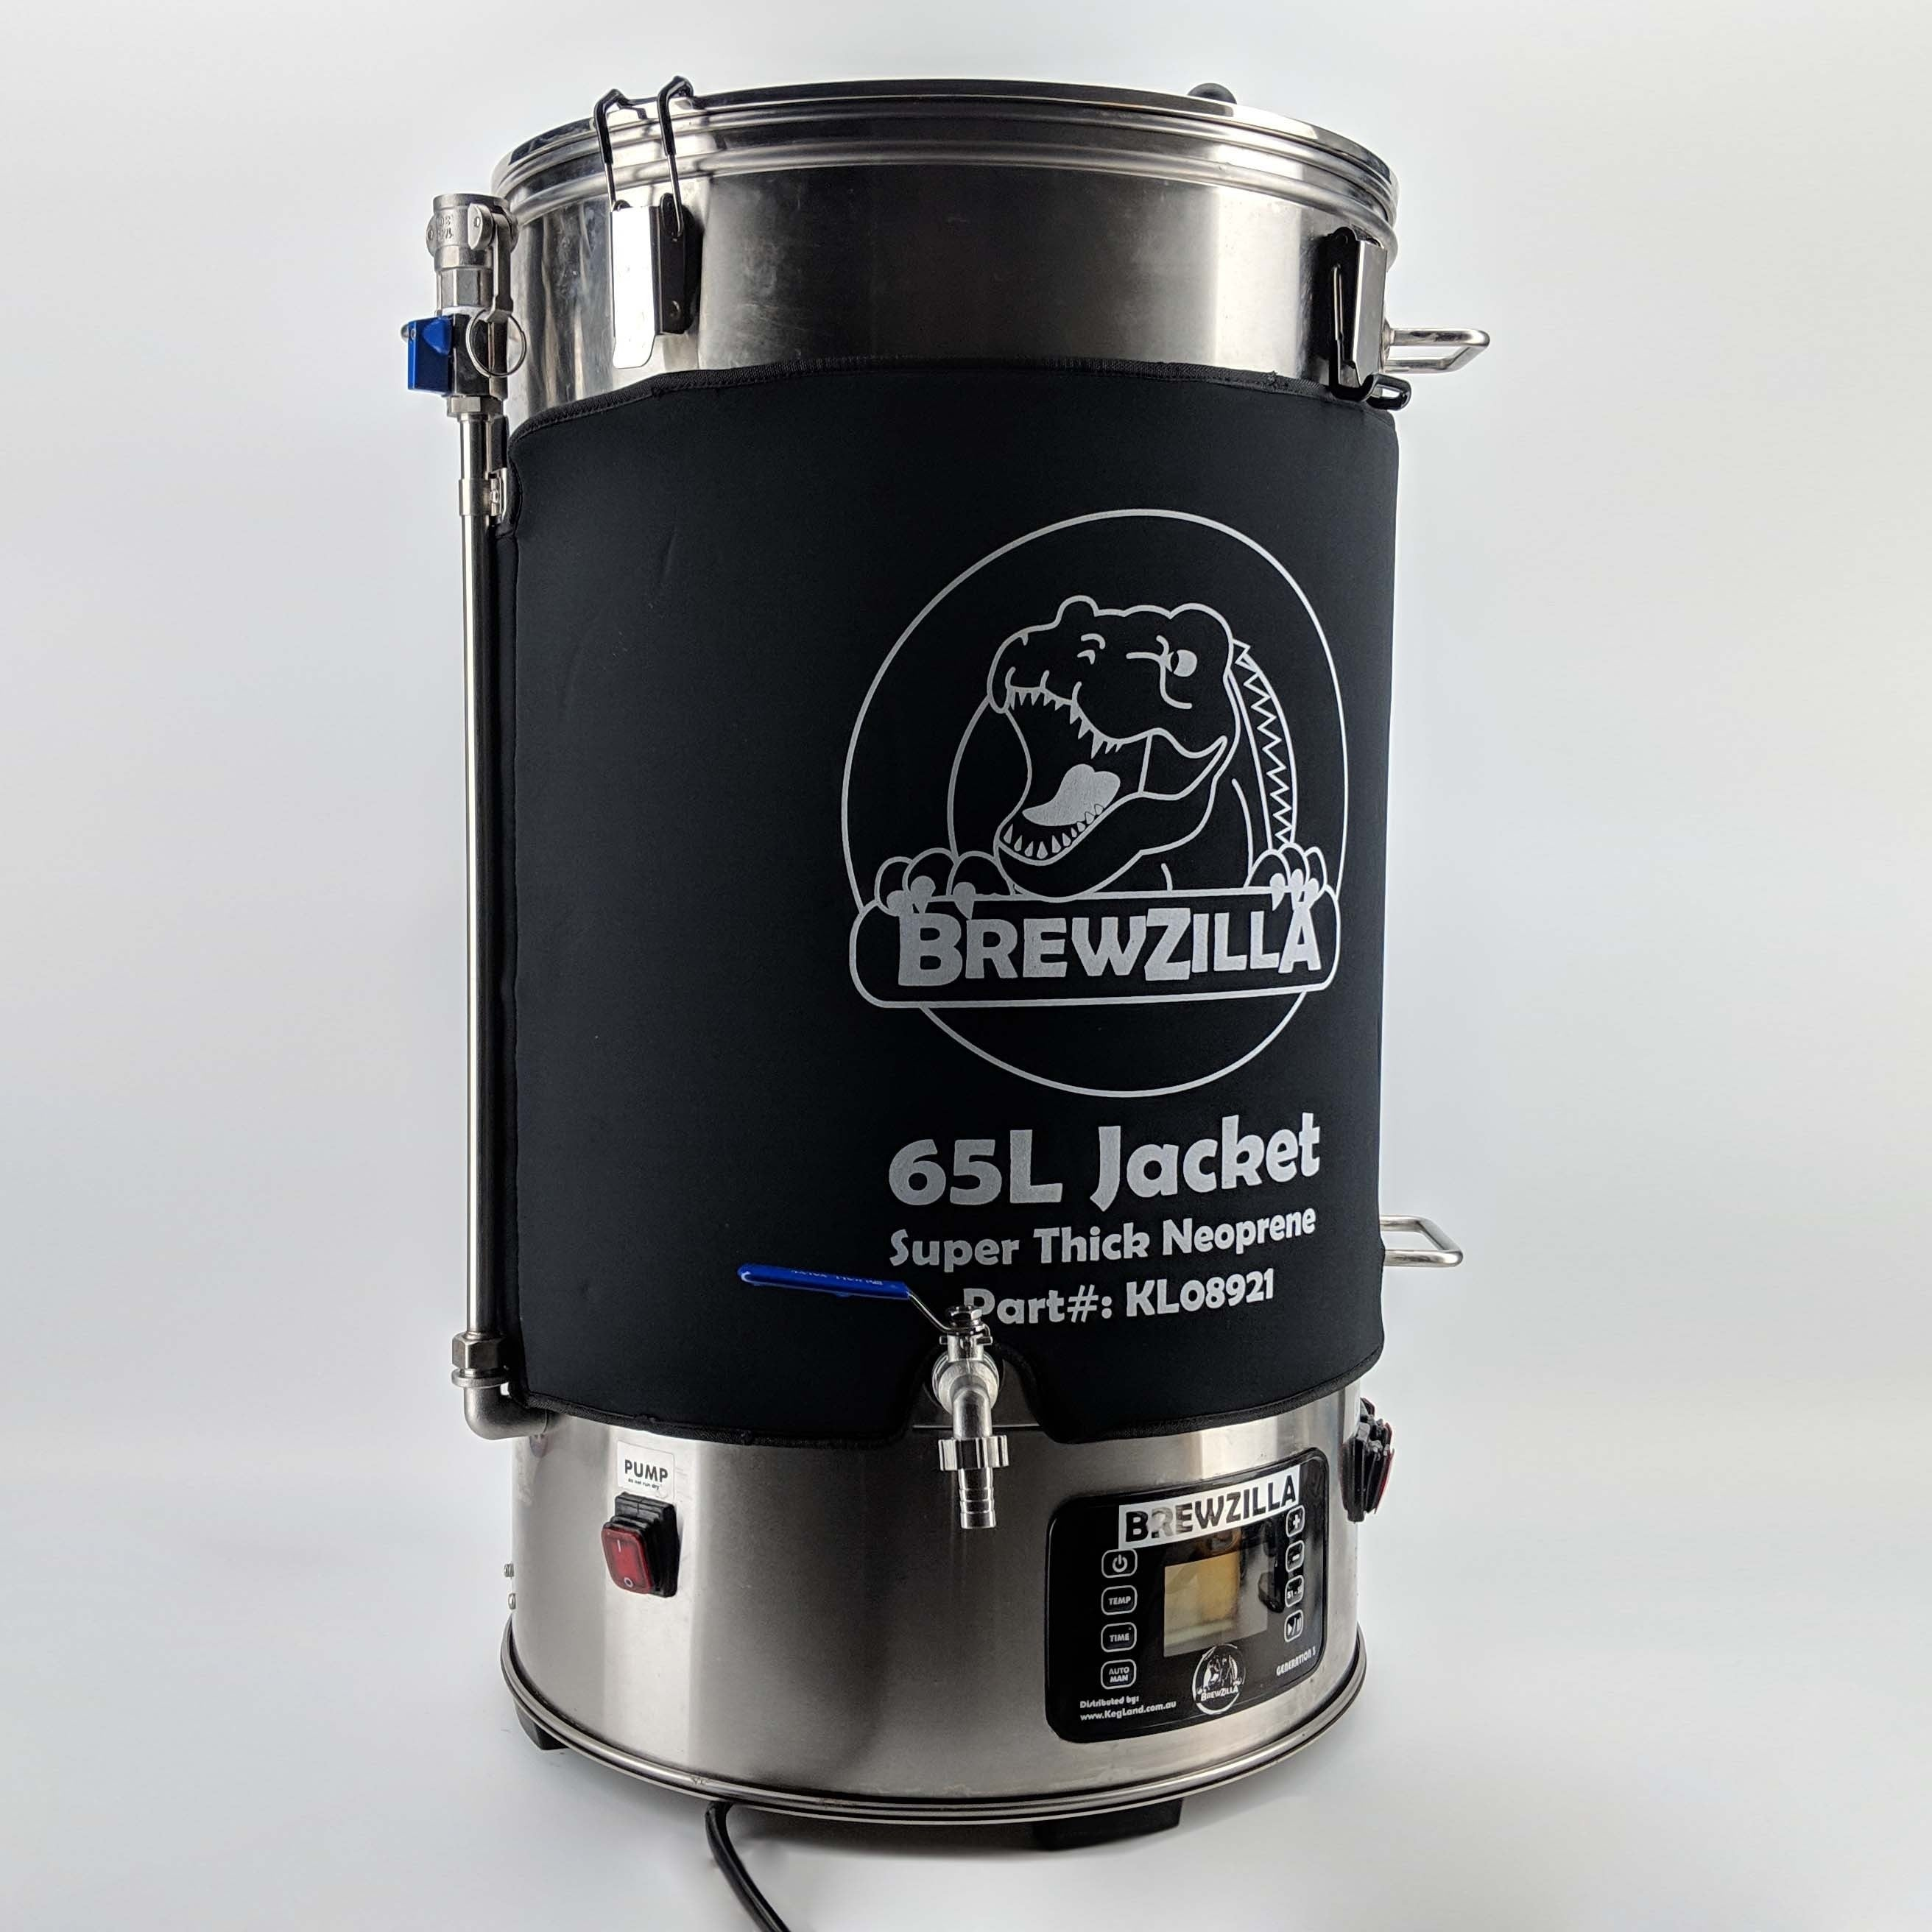 Robobrew Brewzilla Jacket - 65L o/s supplier